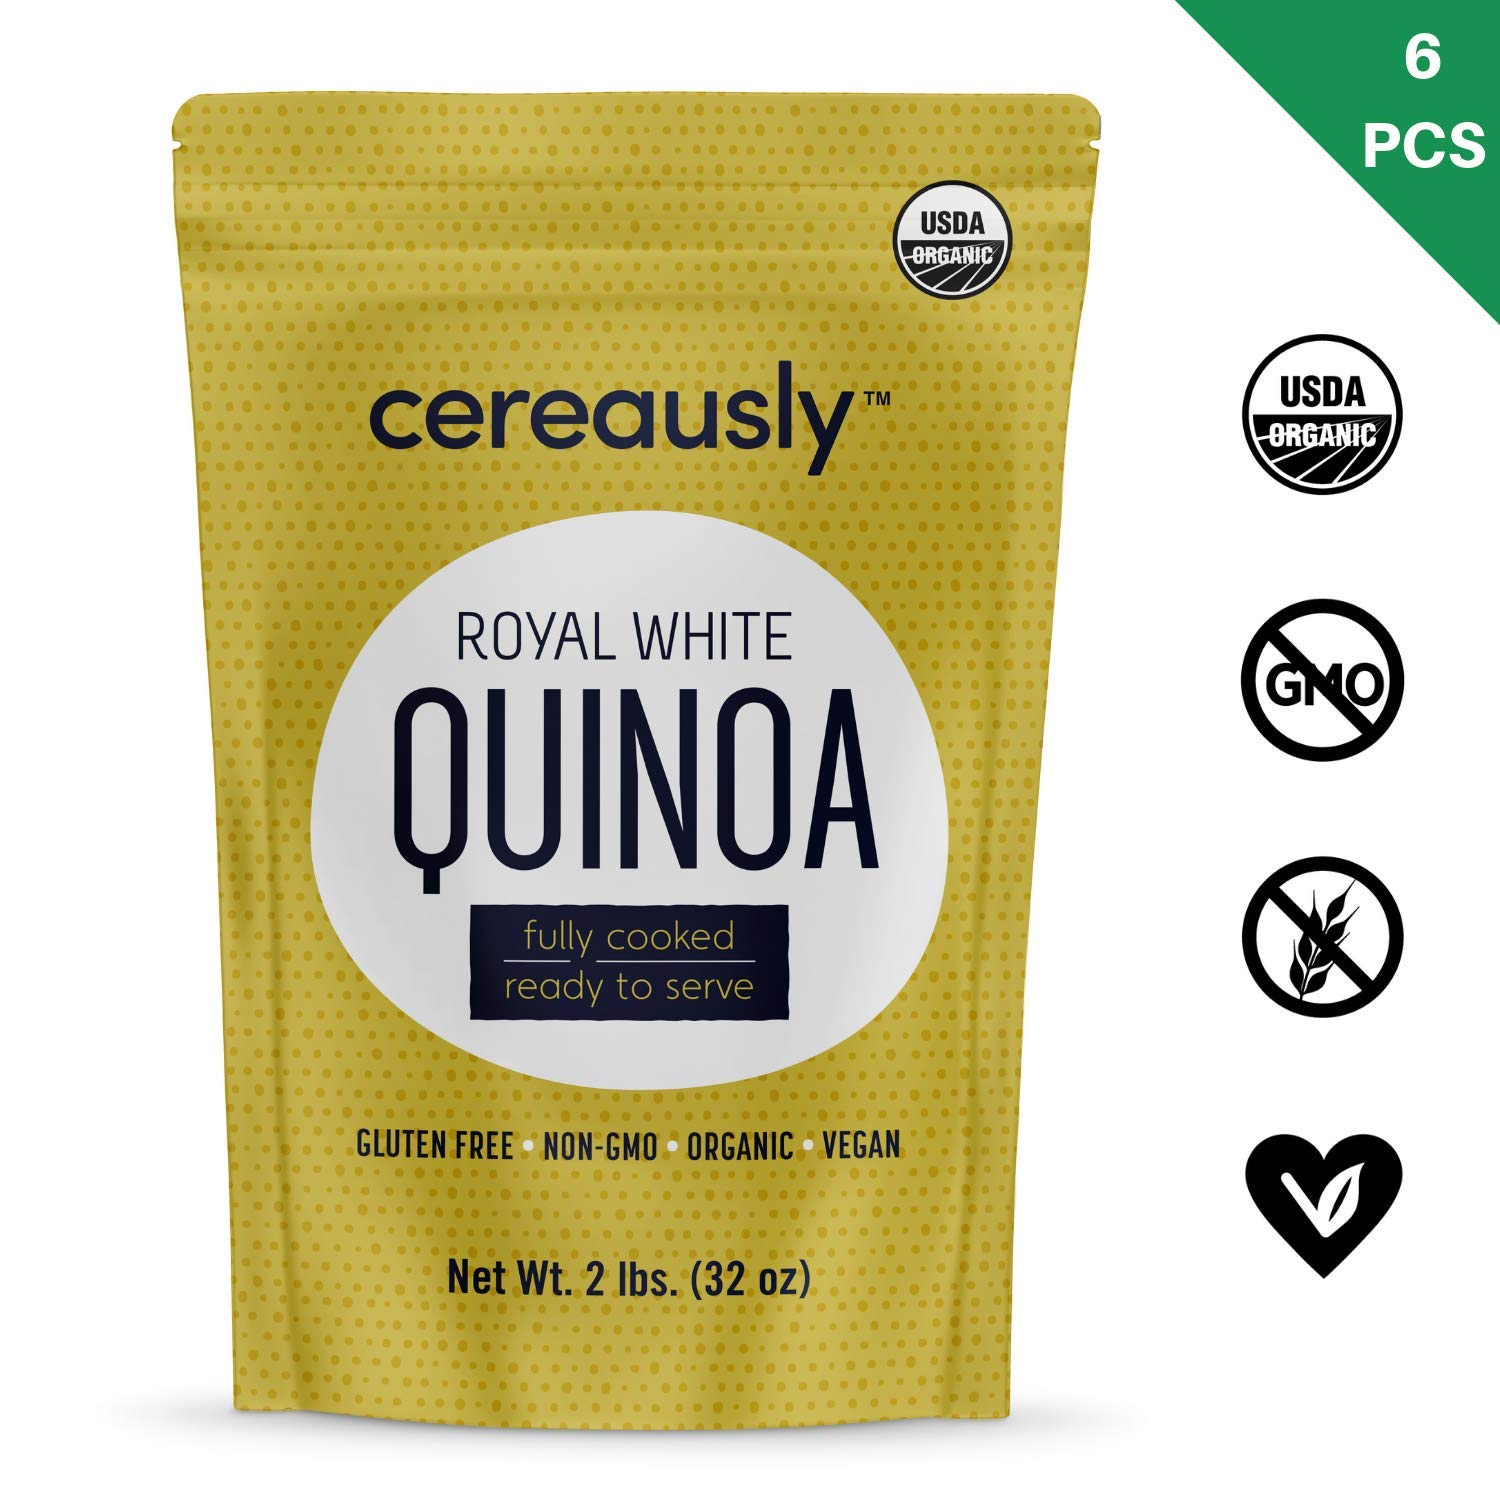 CEREAUSLY Fully Cooked Organic White Quinoa | 12 LBS | Ready to Eat | Royal Bolivian | Non-GMO | Gluten-Free | Vegan (2 LB Pack of 6) by Cereausly